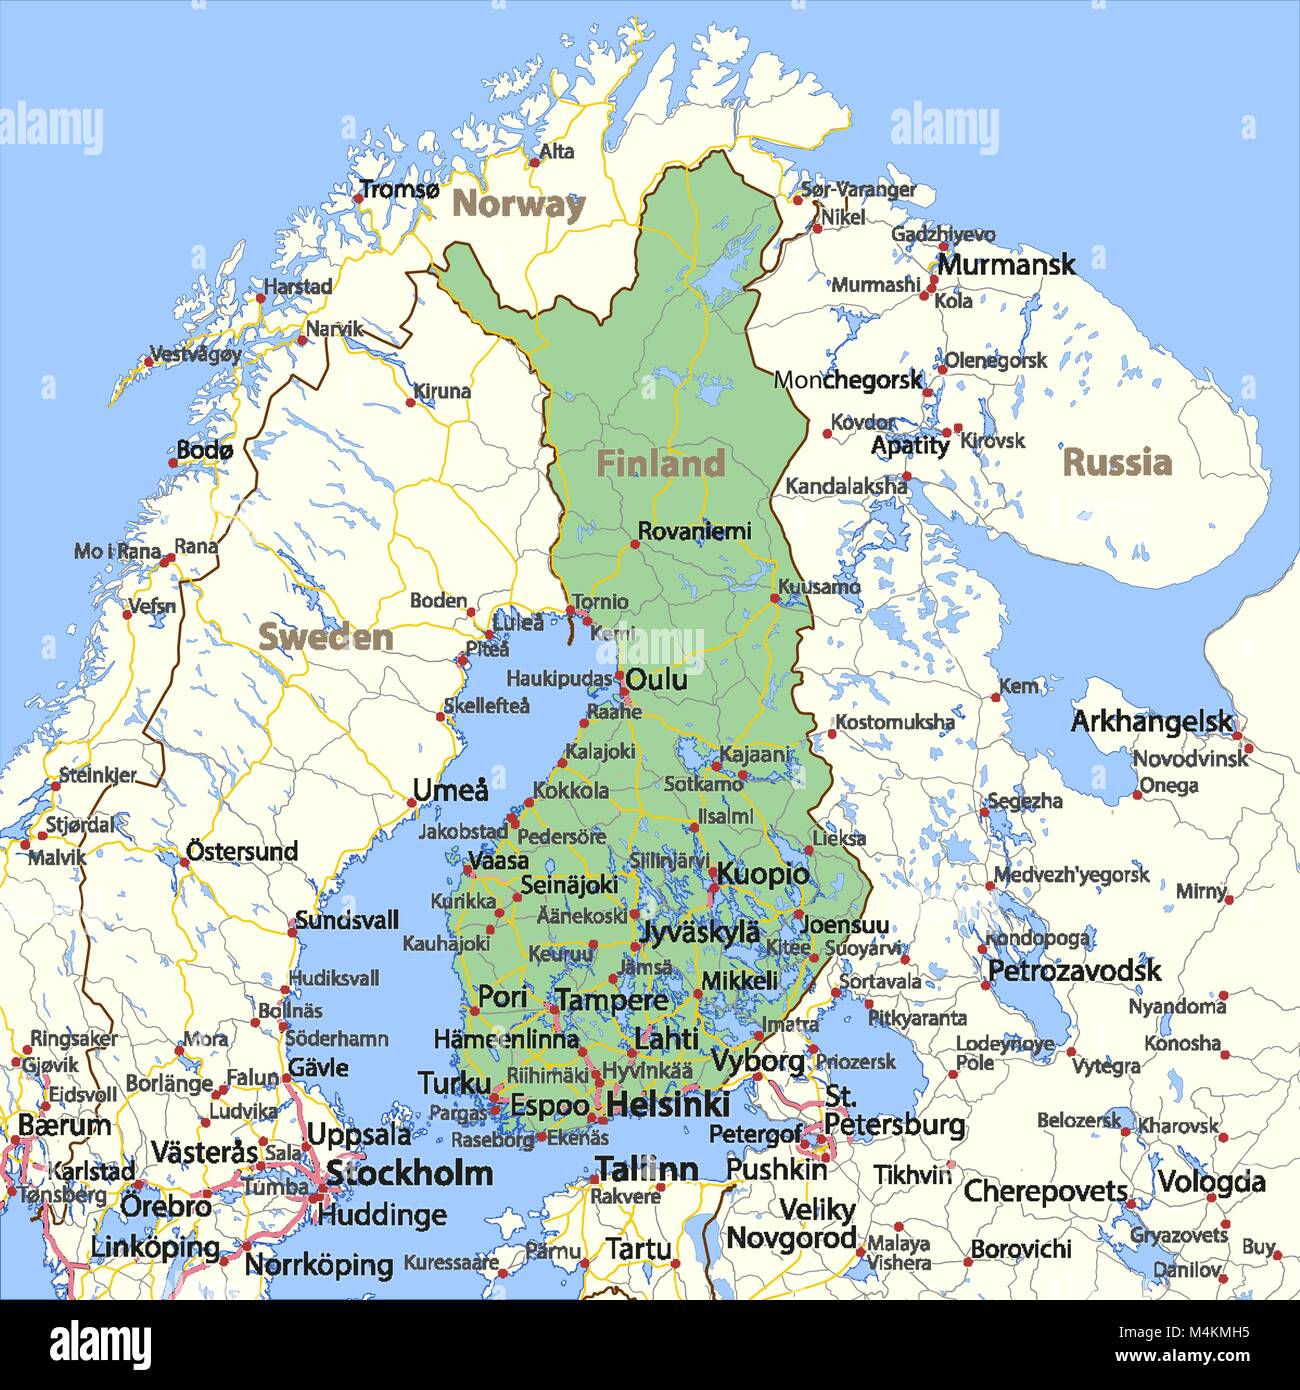 Finland country map stock photos finland country map stock images map of finland shows country borders urban areas place names and roads gumiabroncs Gallery